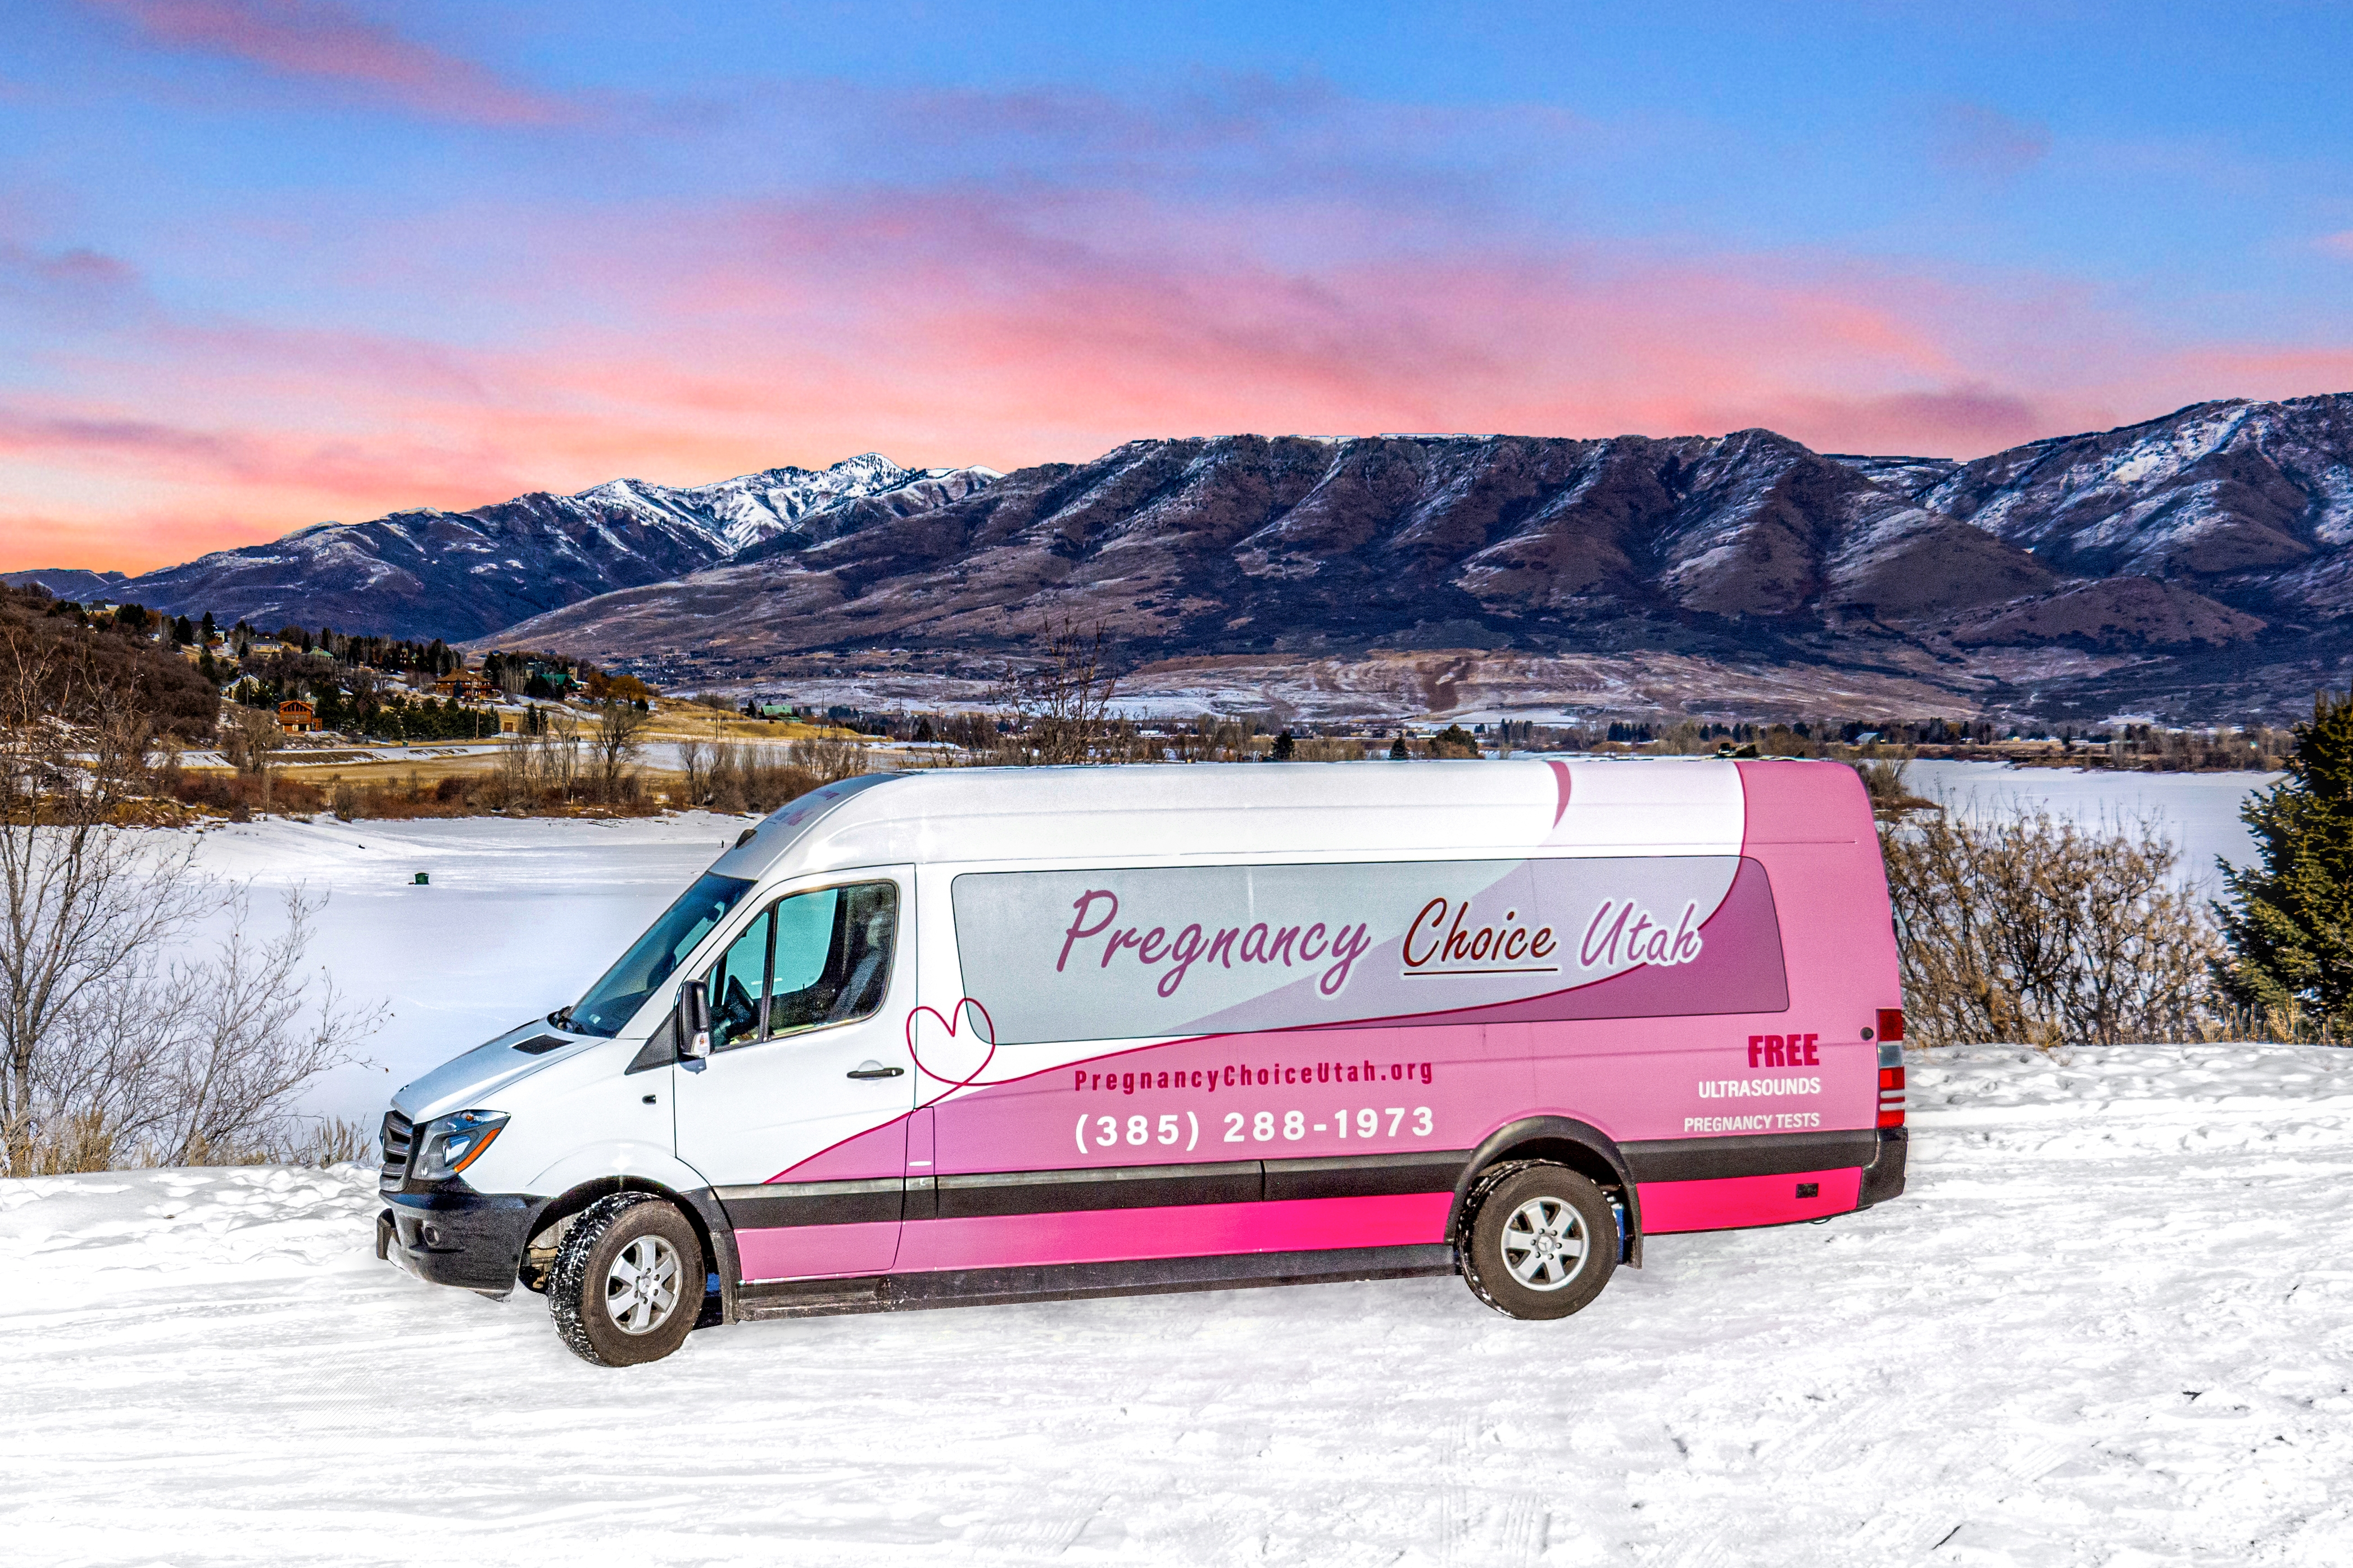 Pro-Life Utah Announces the Grand Opening of a Mobile Ultrasound Clinic!